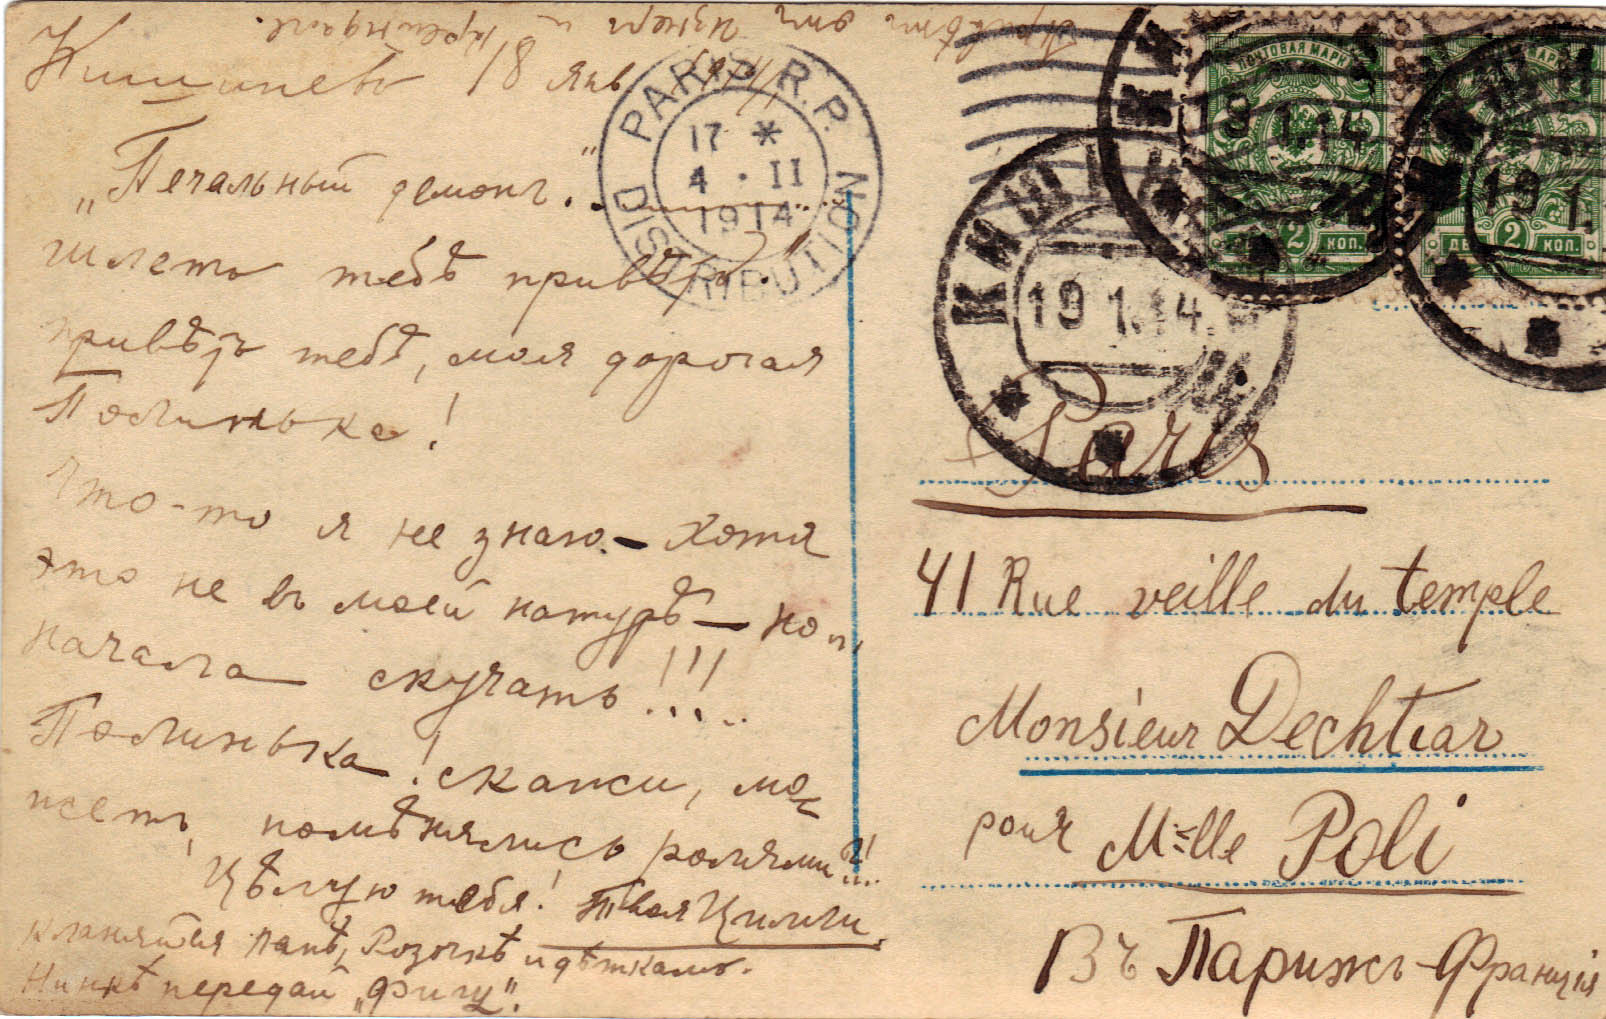 Postcard to Polya from Tsillie January 19, 1914 B